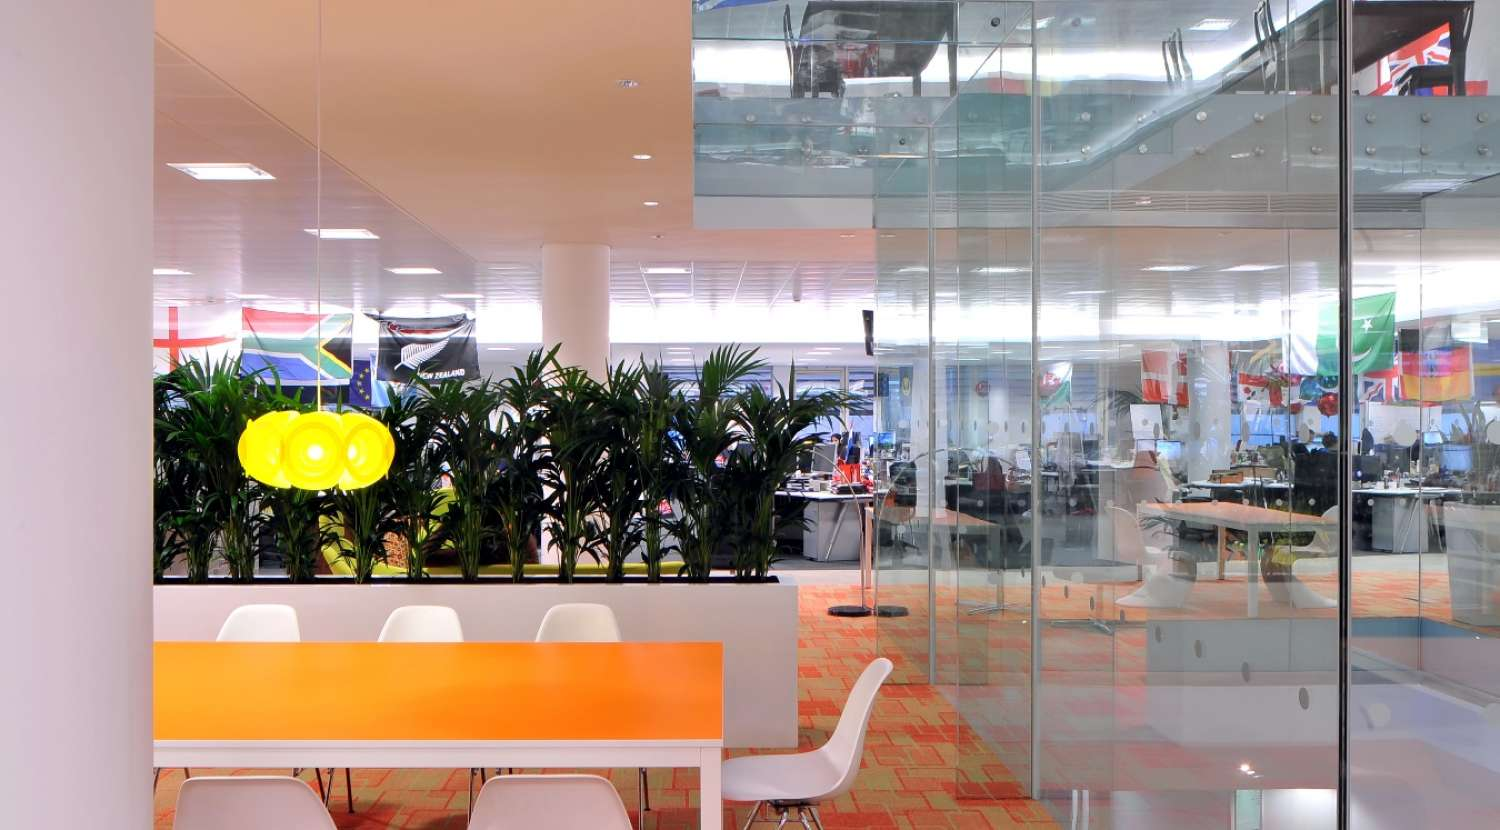 Meeting rooms broken up by indoor plants / Design and fit out by Morgan Lovell